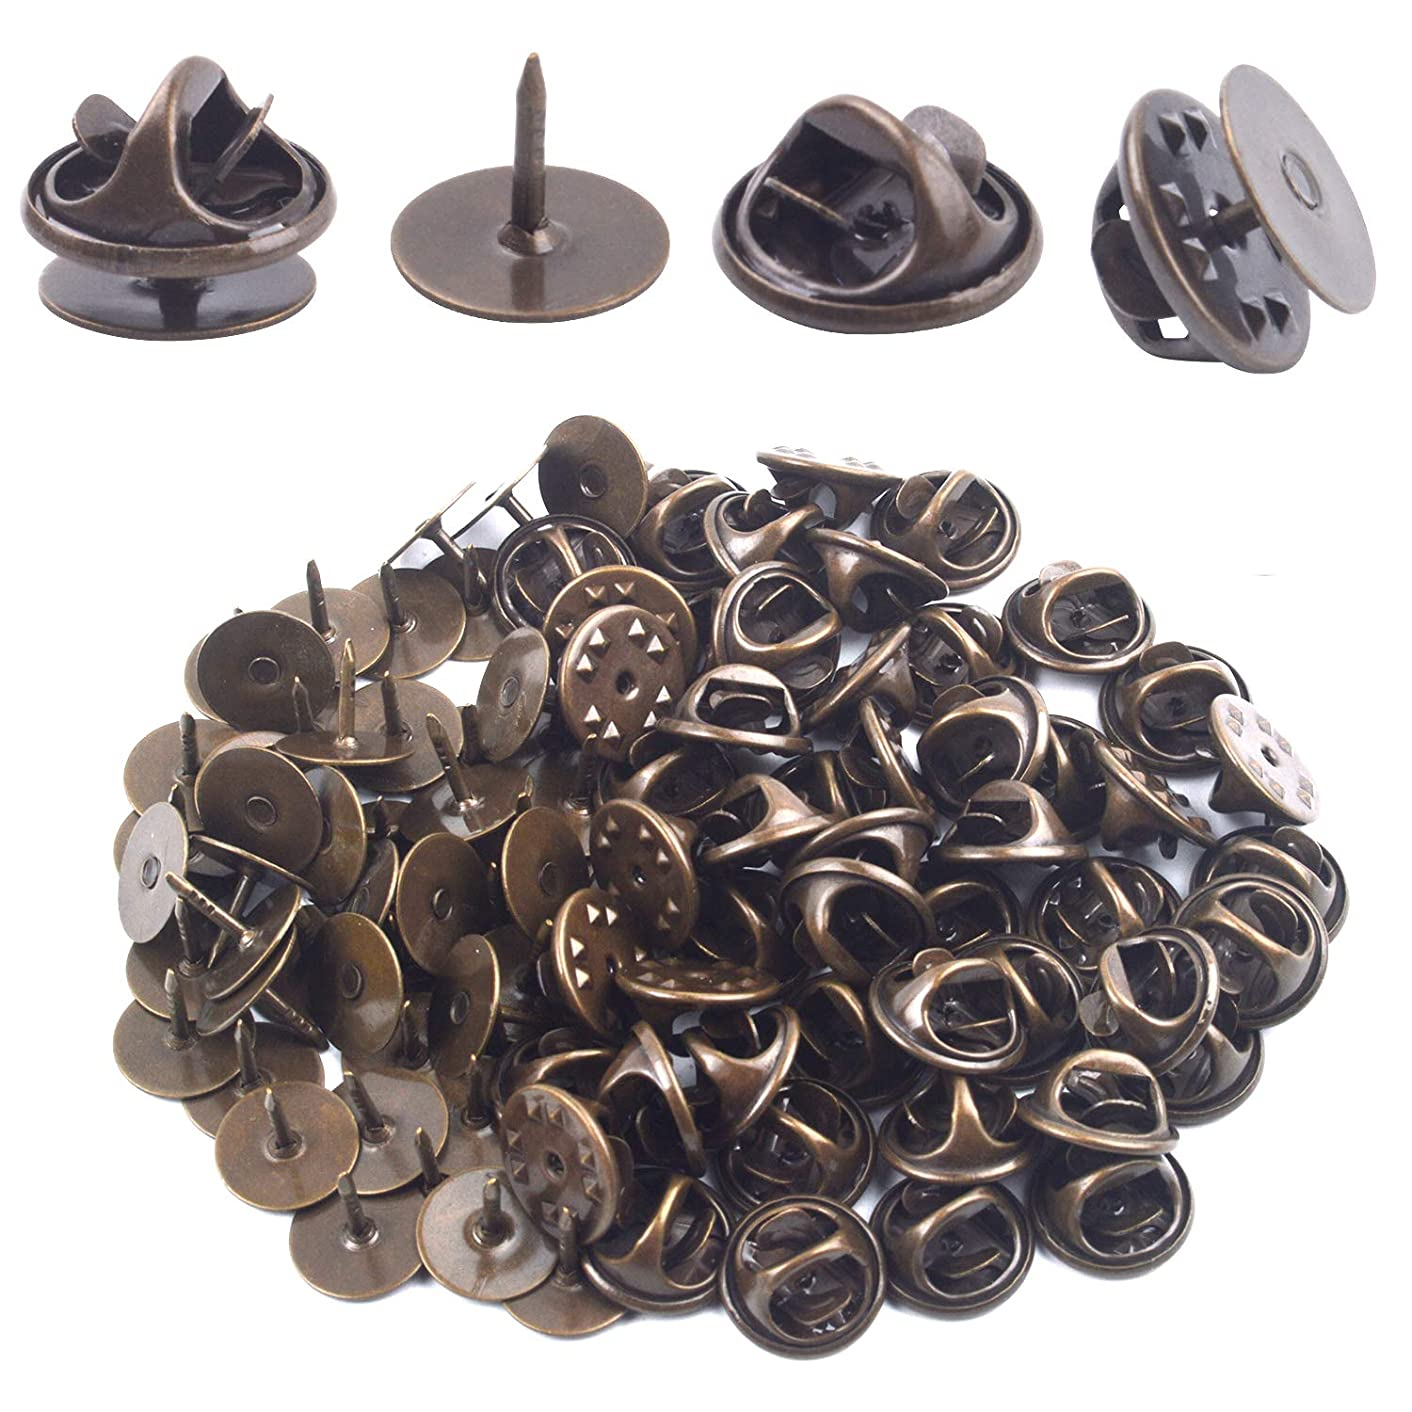 Tie Tacks and Clutch Backs Set, 50 Pieces Bronze Tie Tacks Blank Pins with 50 Pieces Butterfly Clutch Pin Backs Locking Clasps